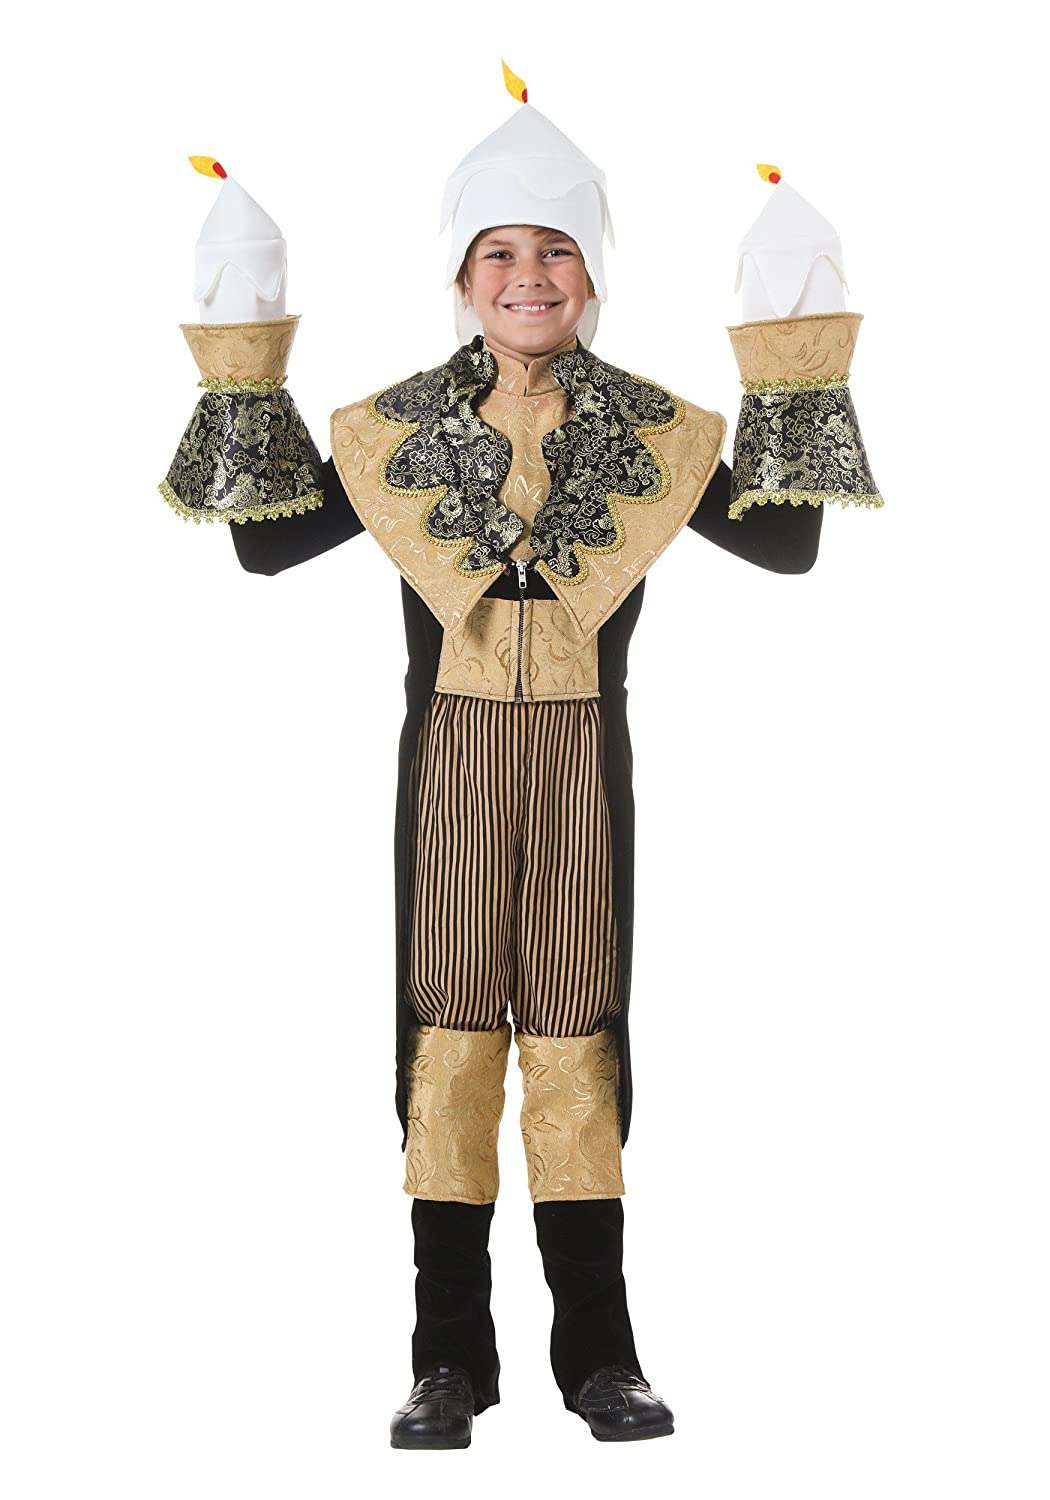 Child Candlestick Costume - ST lumiere